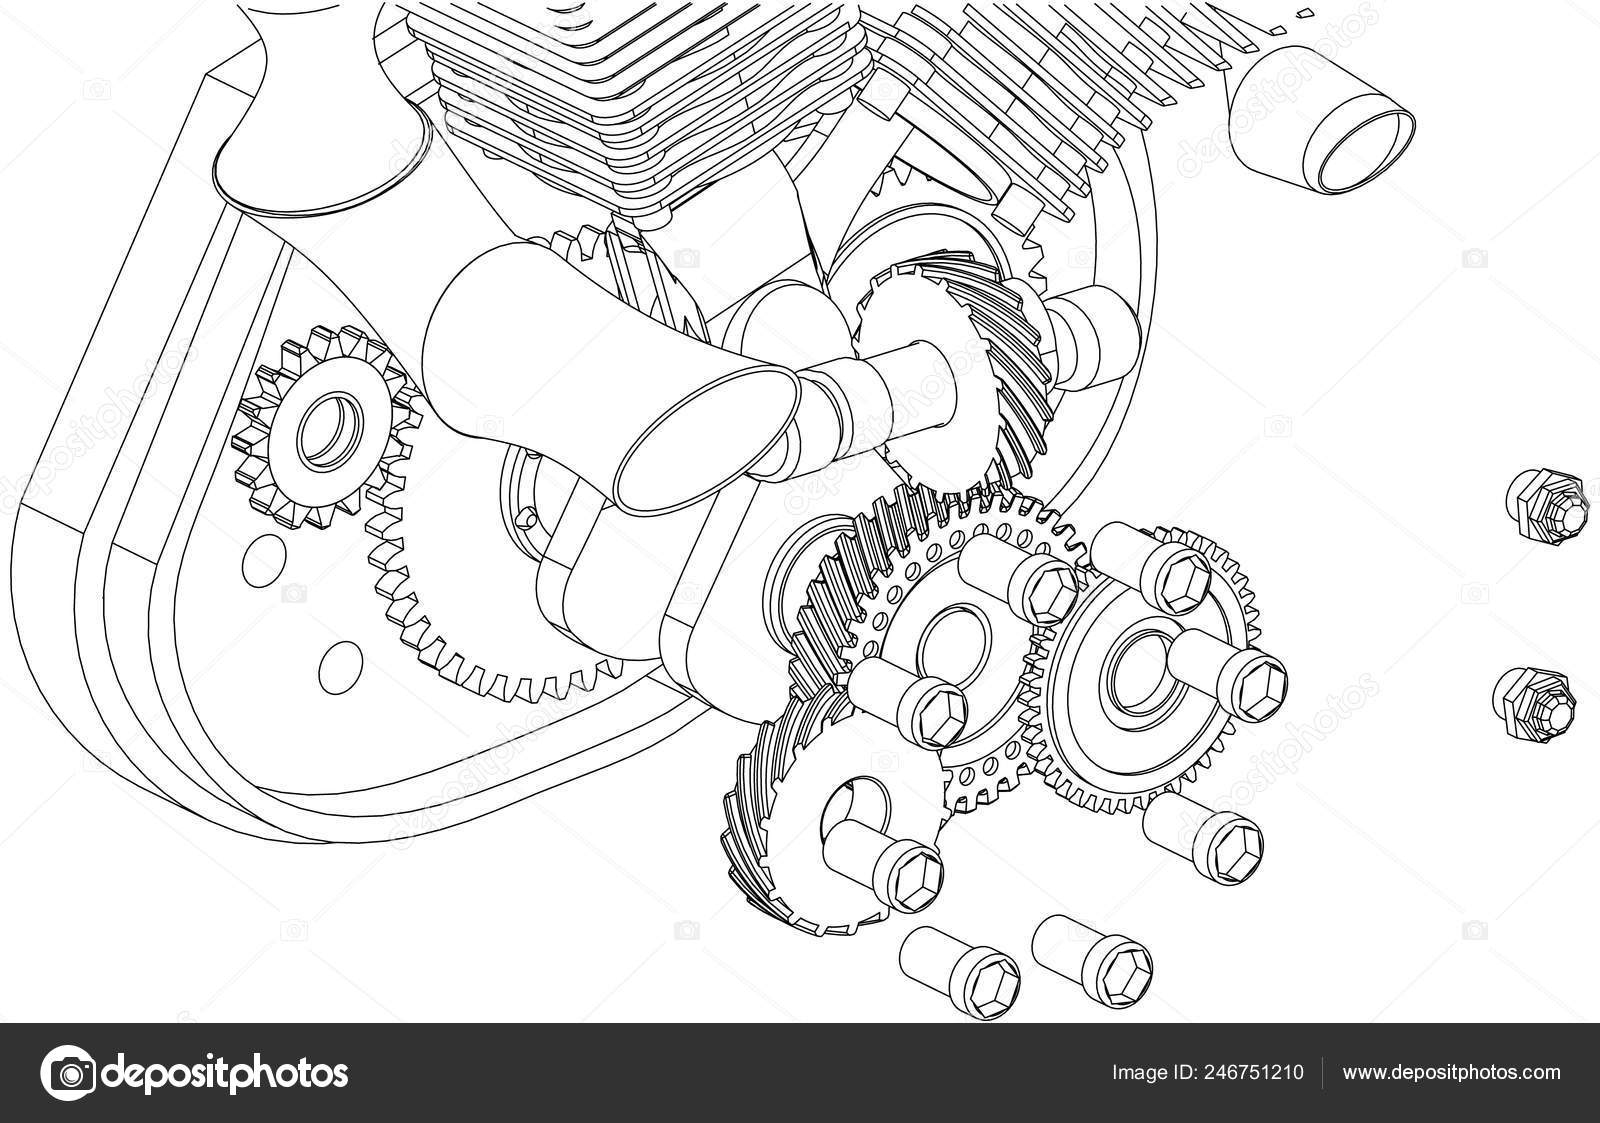 hight resolution of disassembled motorcycle engine on a white background drawing vector by volodya nikiforov 97 mail ru